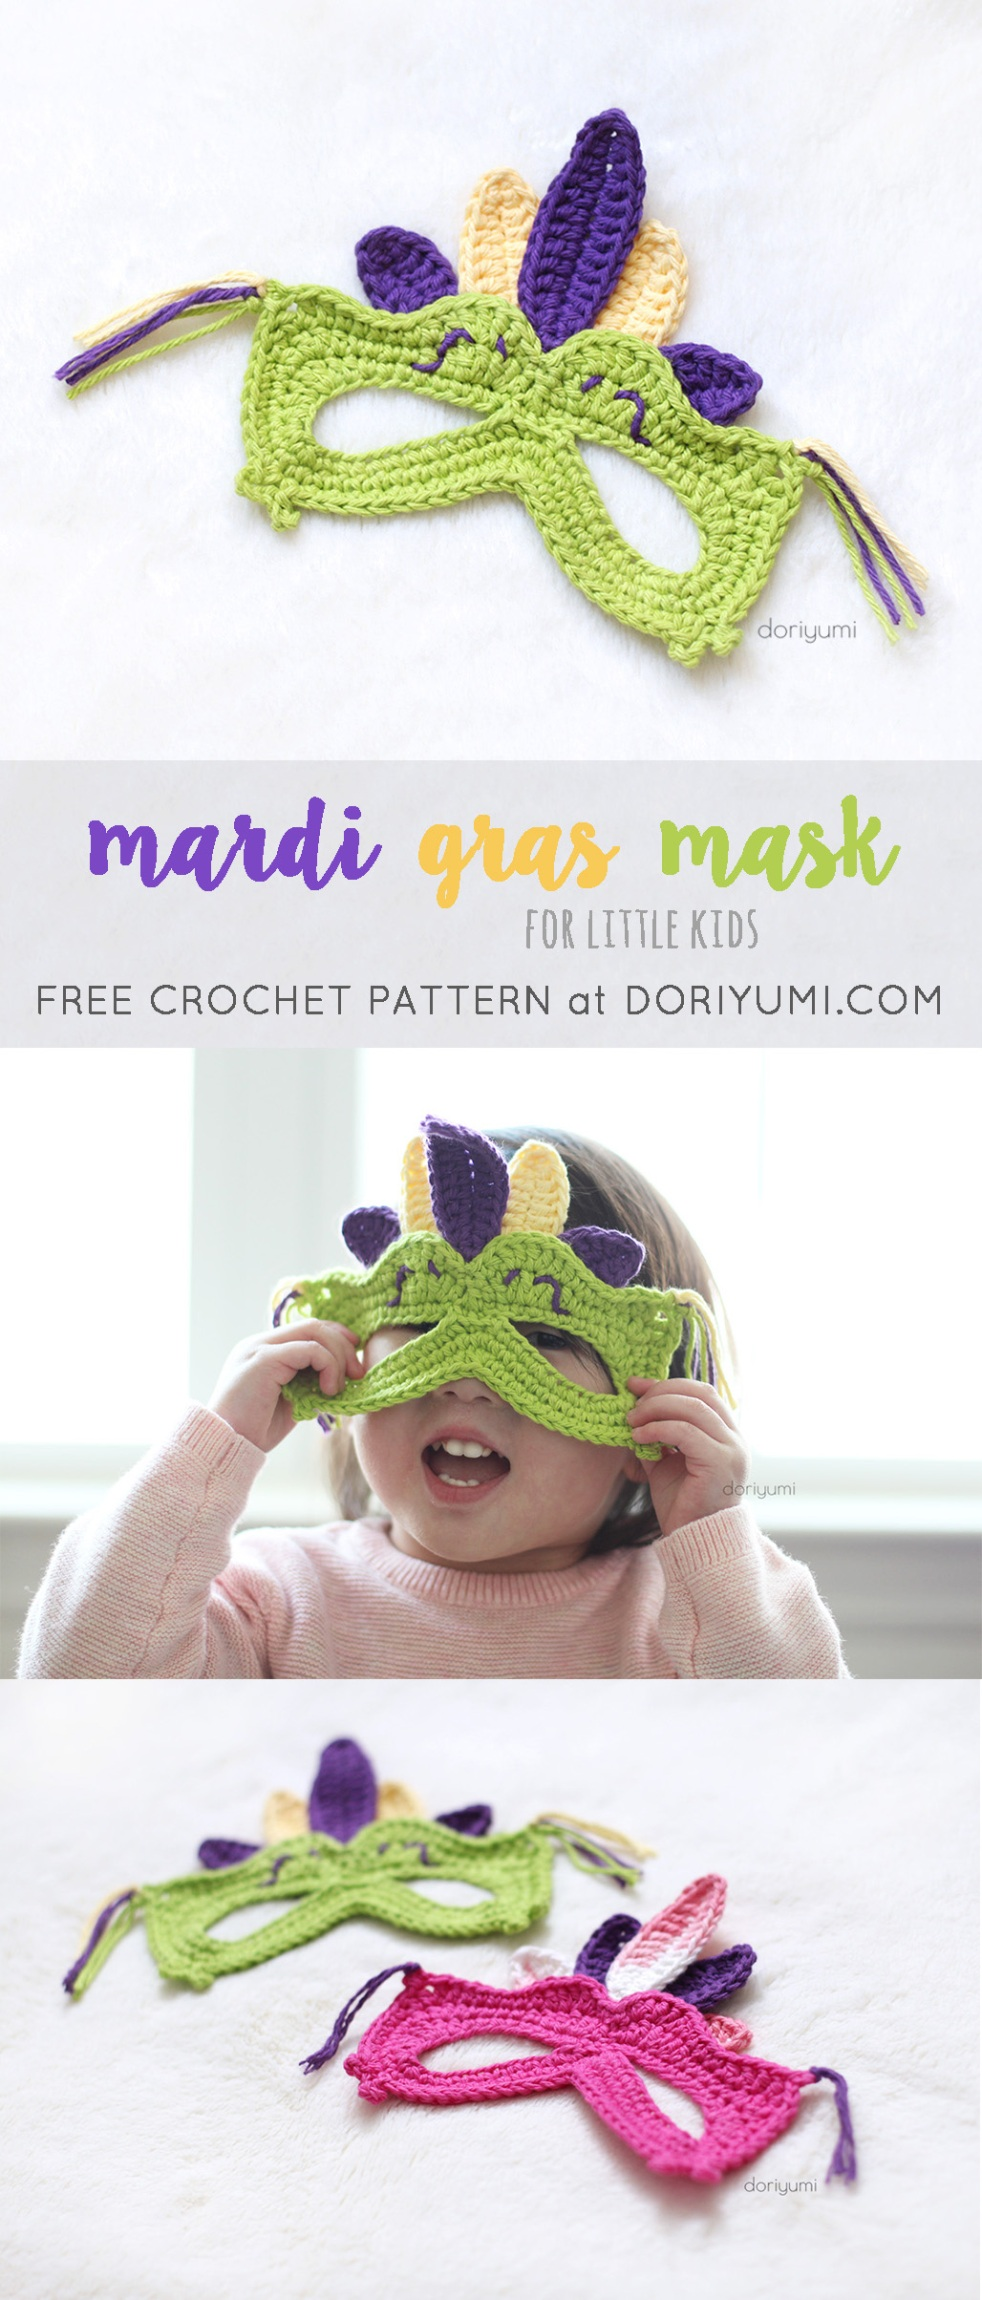 mardi gras mask for kids free crochet pattern by doriyumi